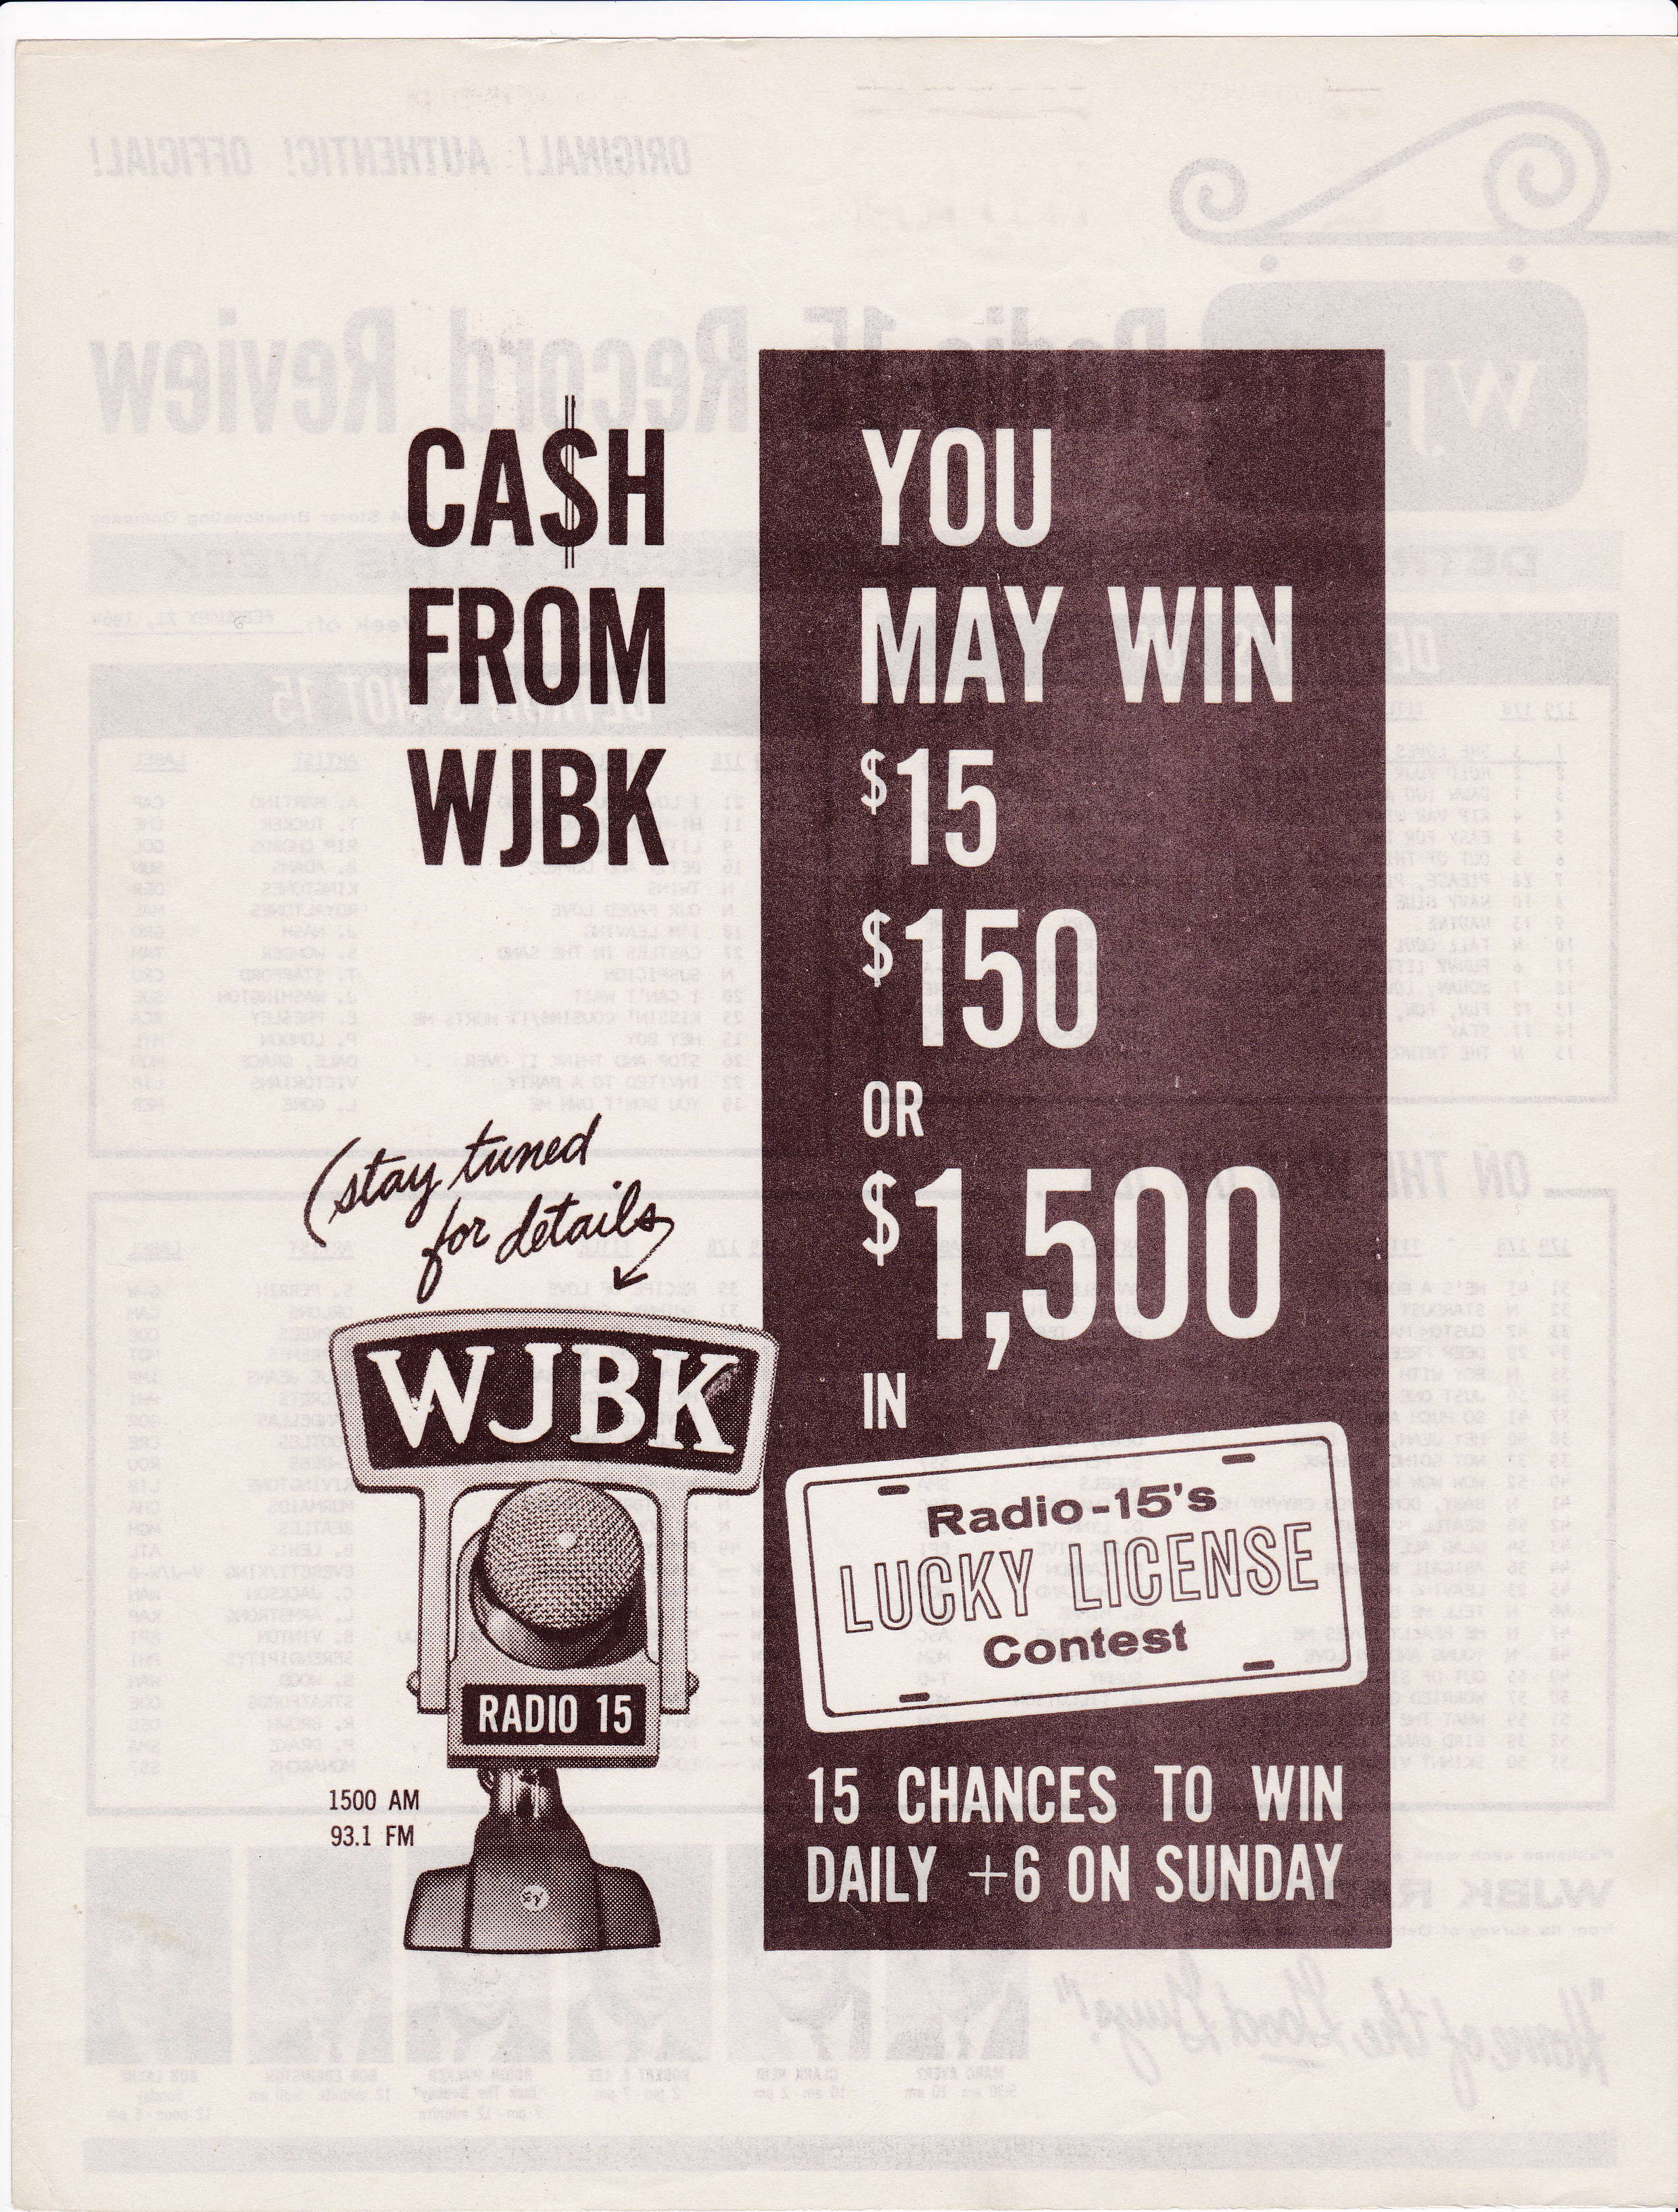 WJBK SURVEY - FEBRAURY 21, 1964 - BACK